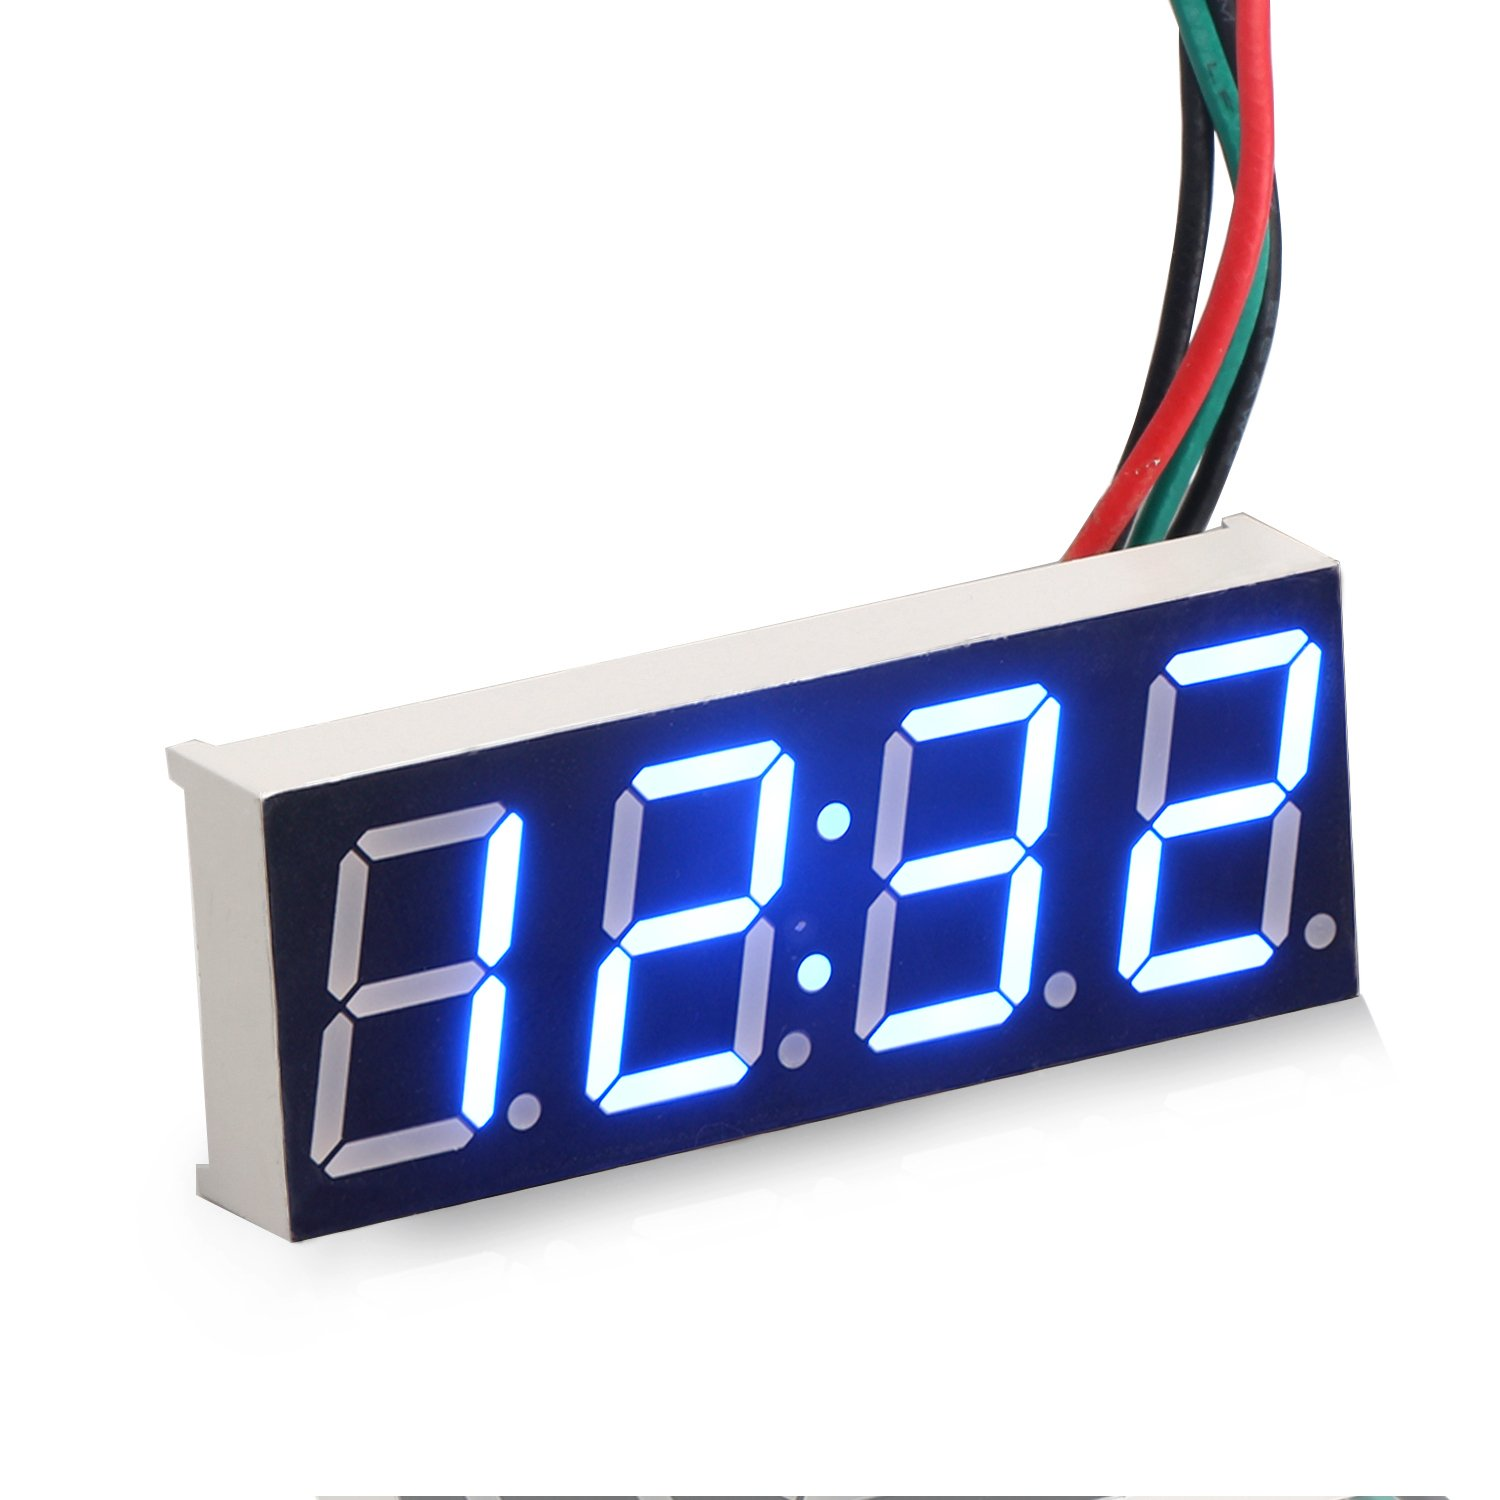 DROK® Car Clock Digital Timetable 0.56' Blue LED Display Panel Electronic Clock Stopwatch Second Chronograph with Night Light Auto Time Display Car Vehicles 12/24V Battery Operated DEOK 090787_EU